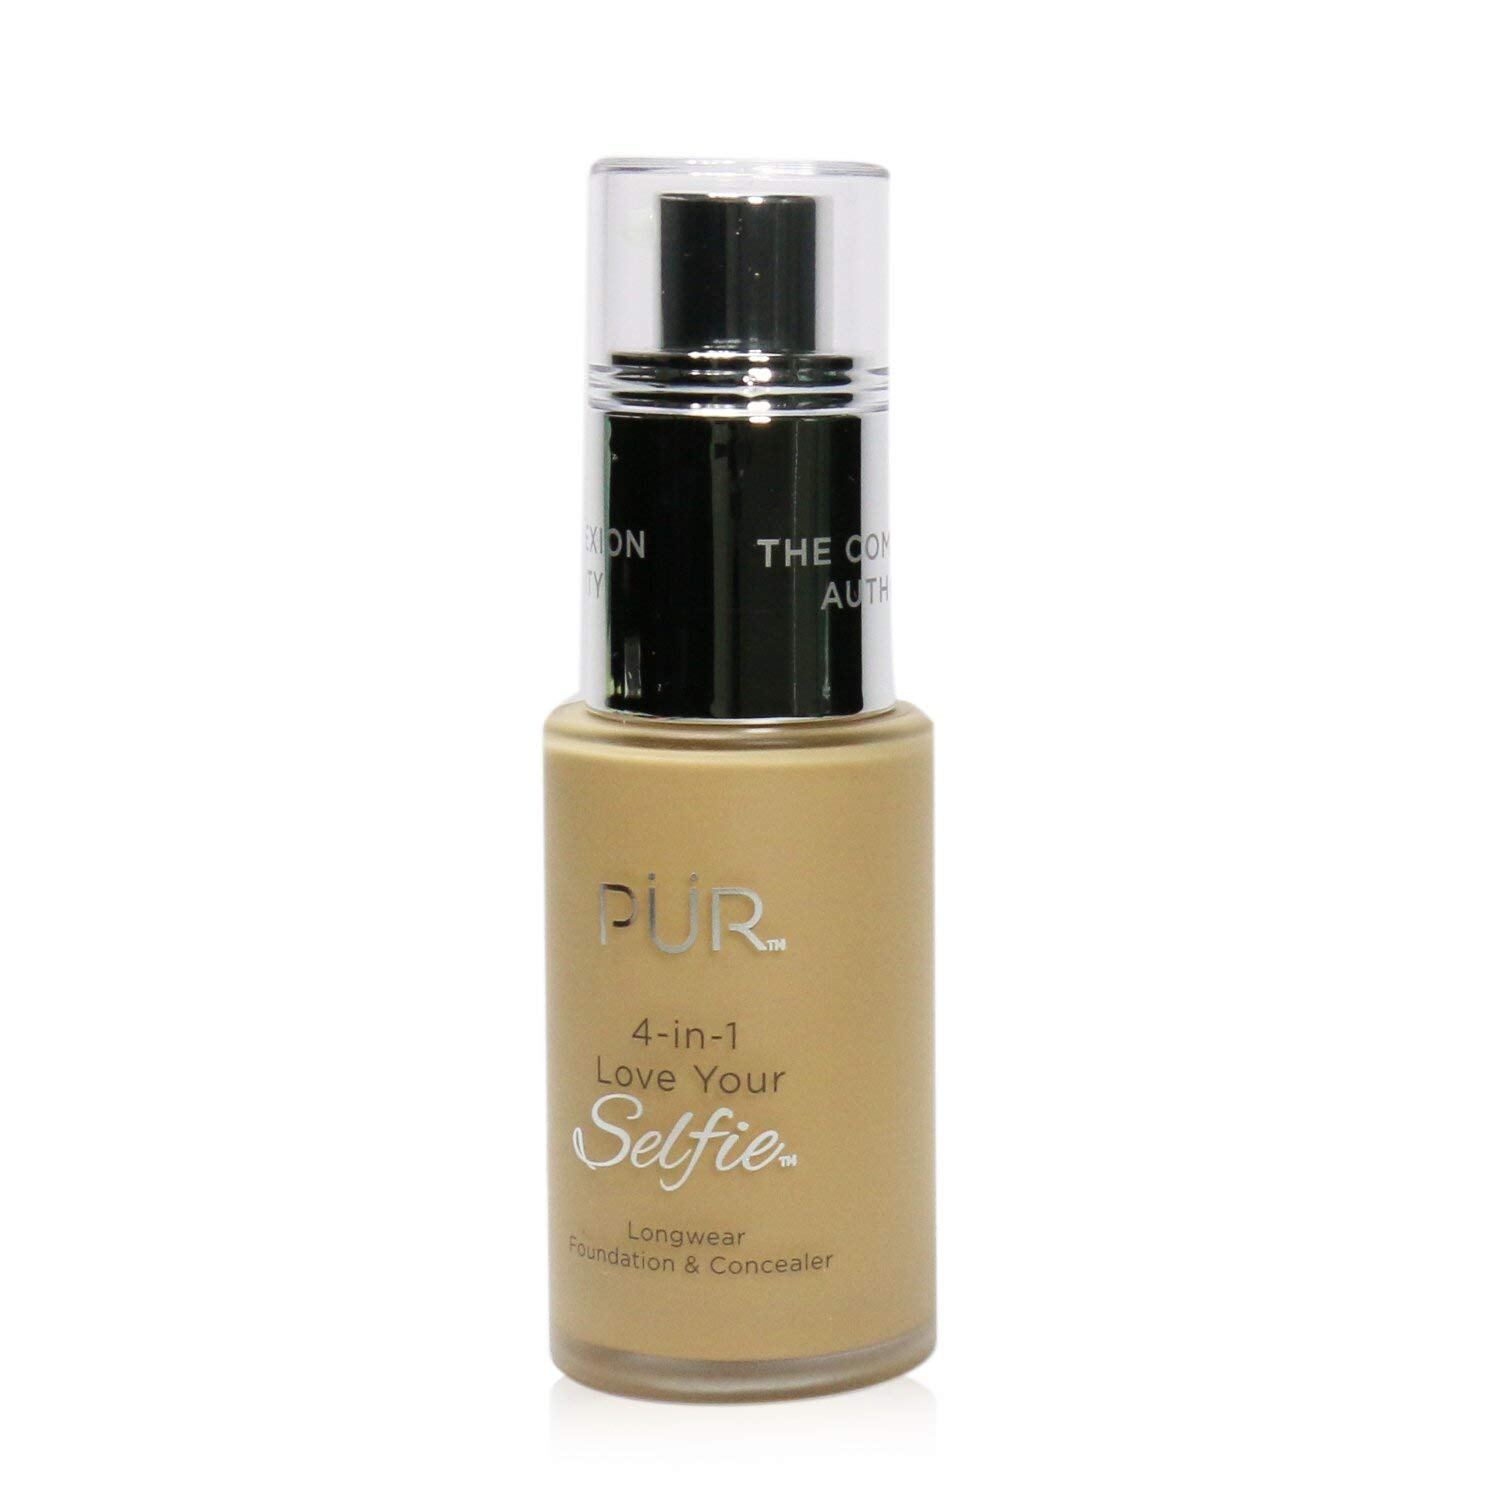 PÜR 4-in-1 Love Your Selfie Longwear Foundation & Concealer